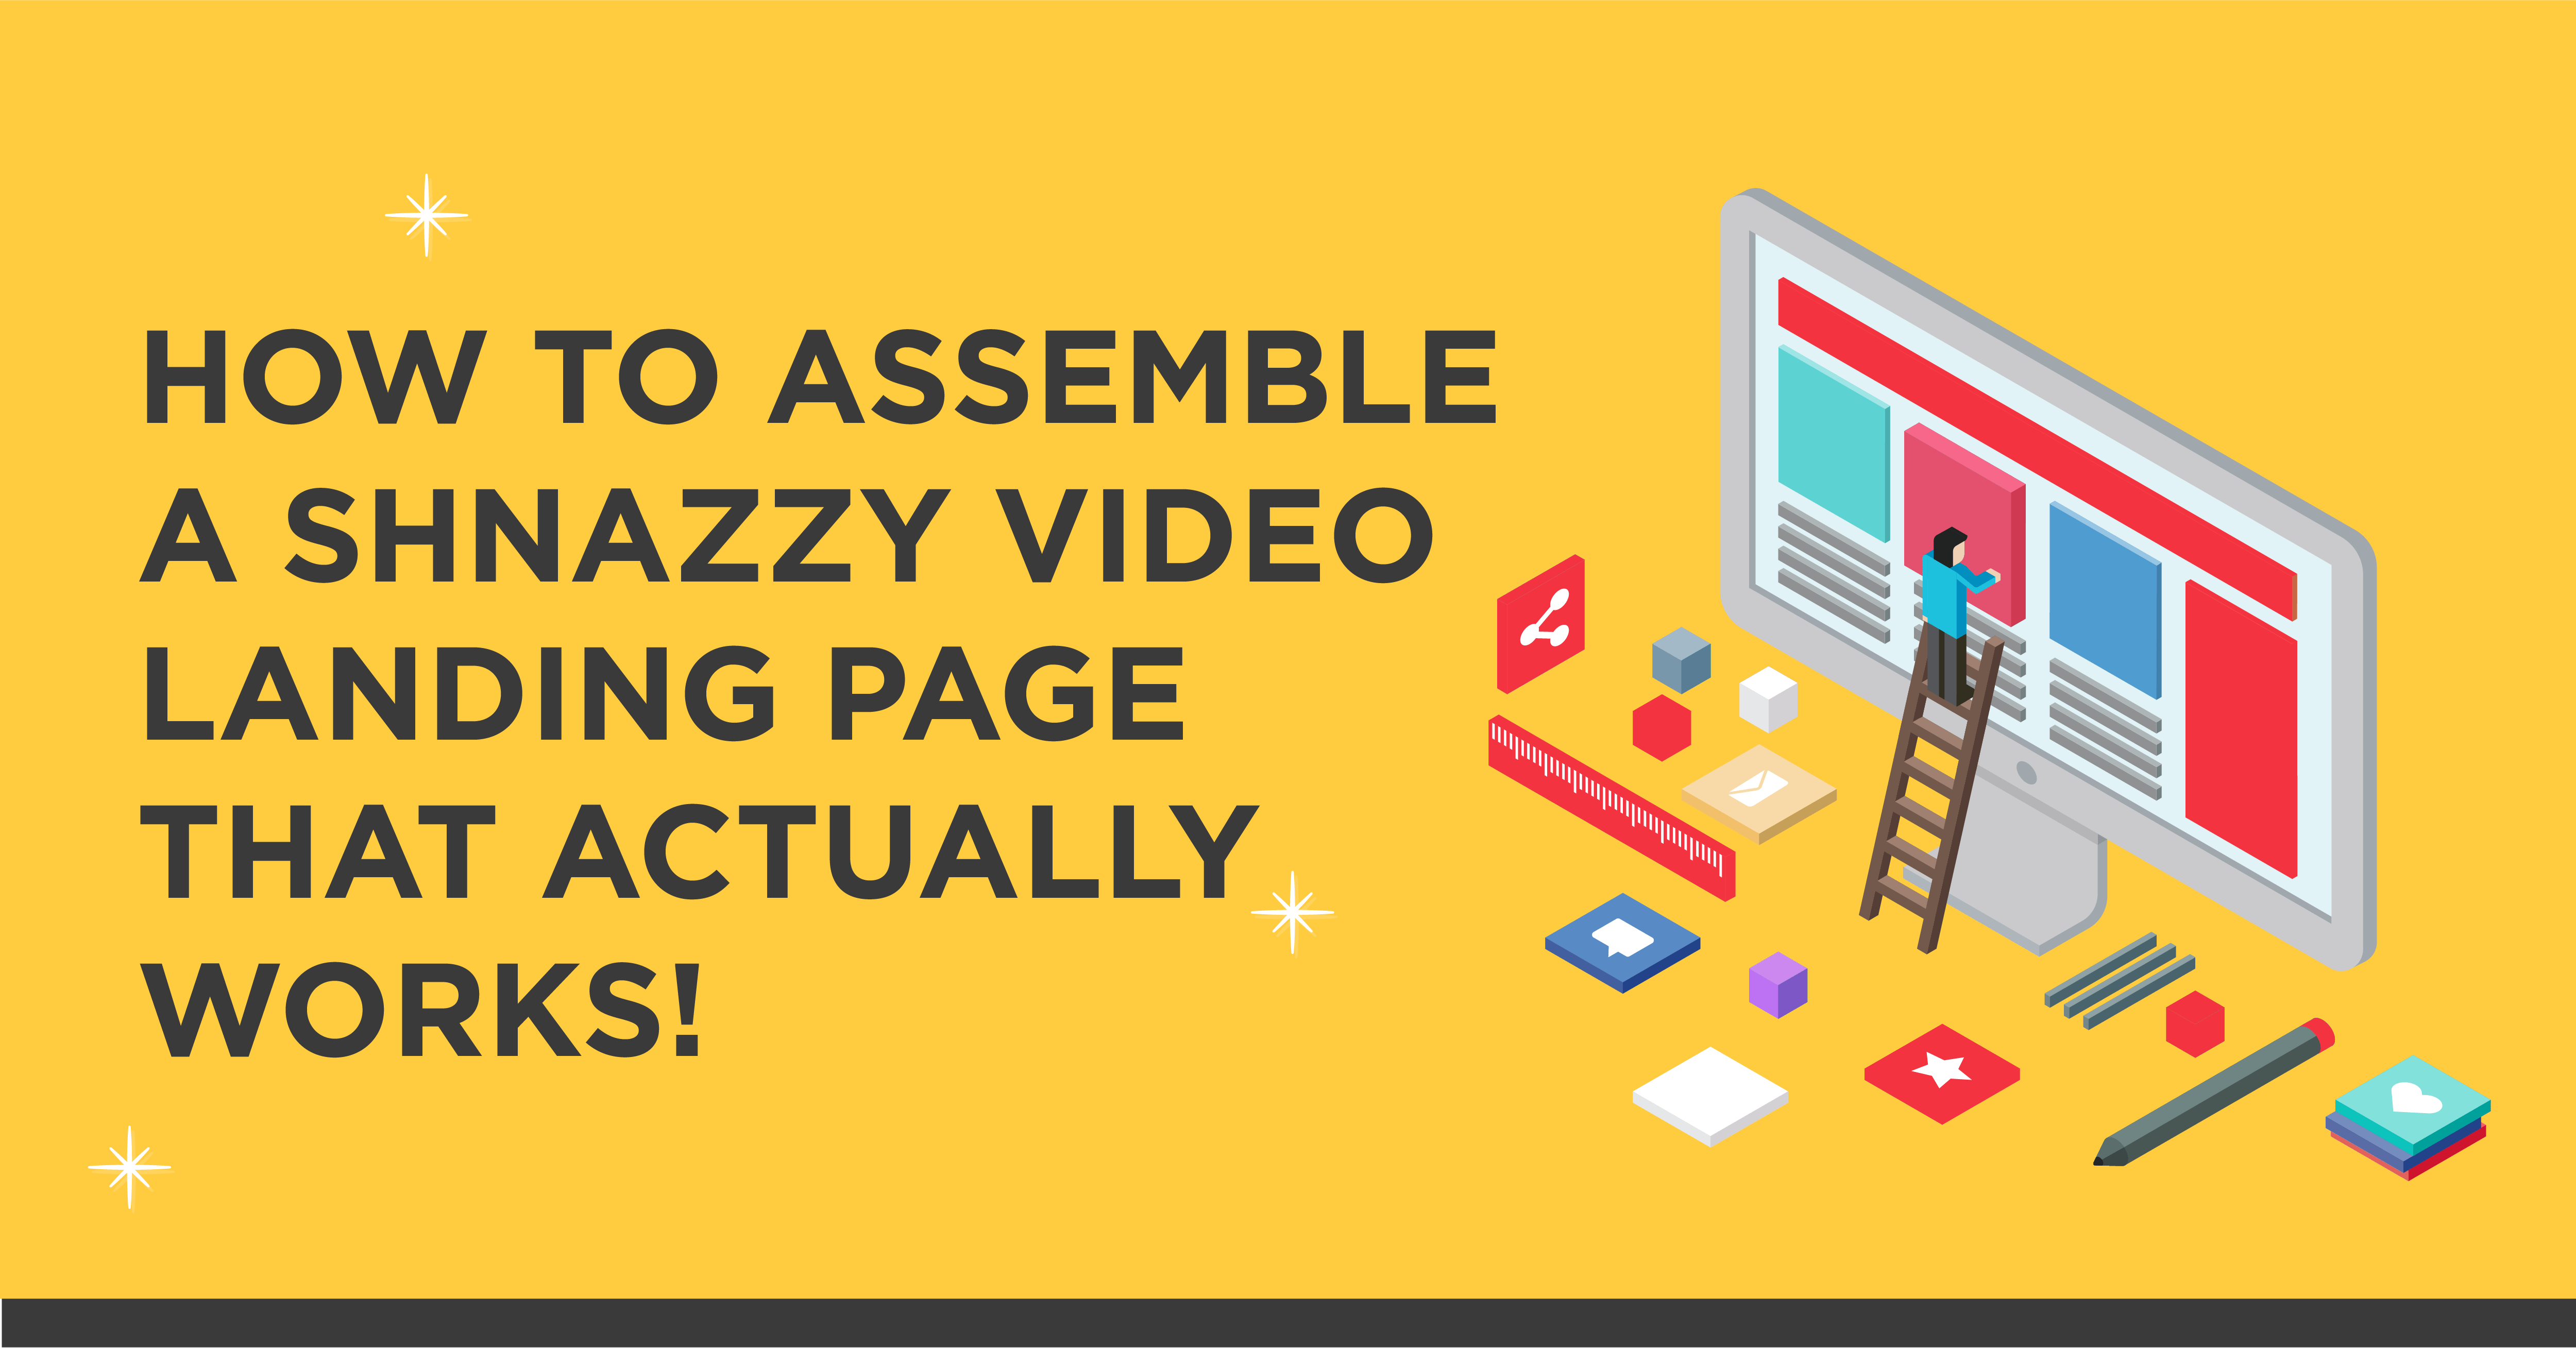 How To Assemble A Shnazzy Video Facebook Ad-02